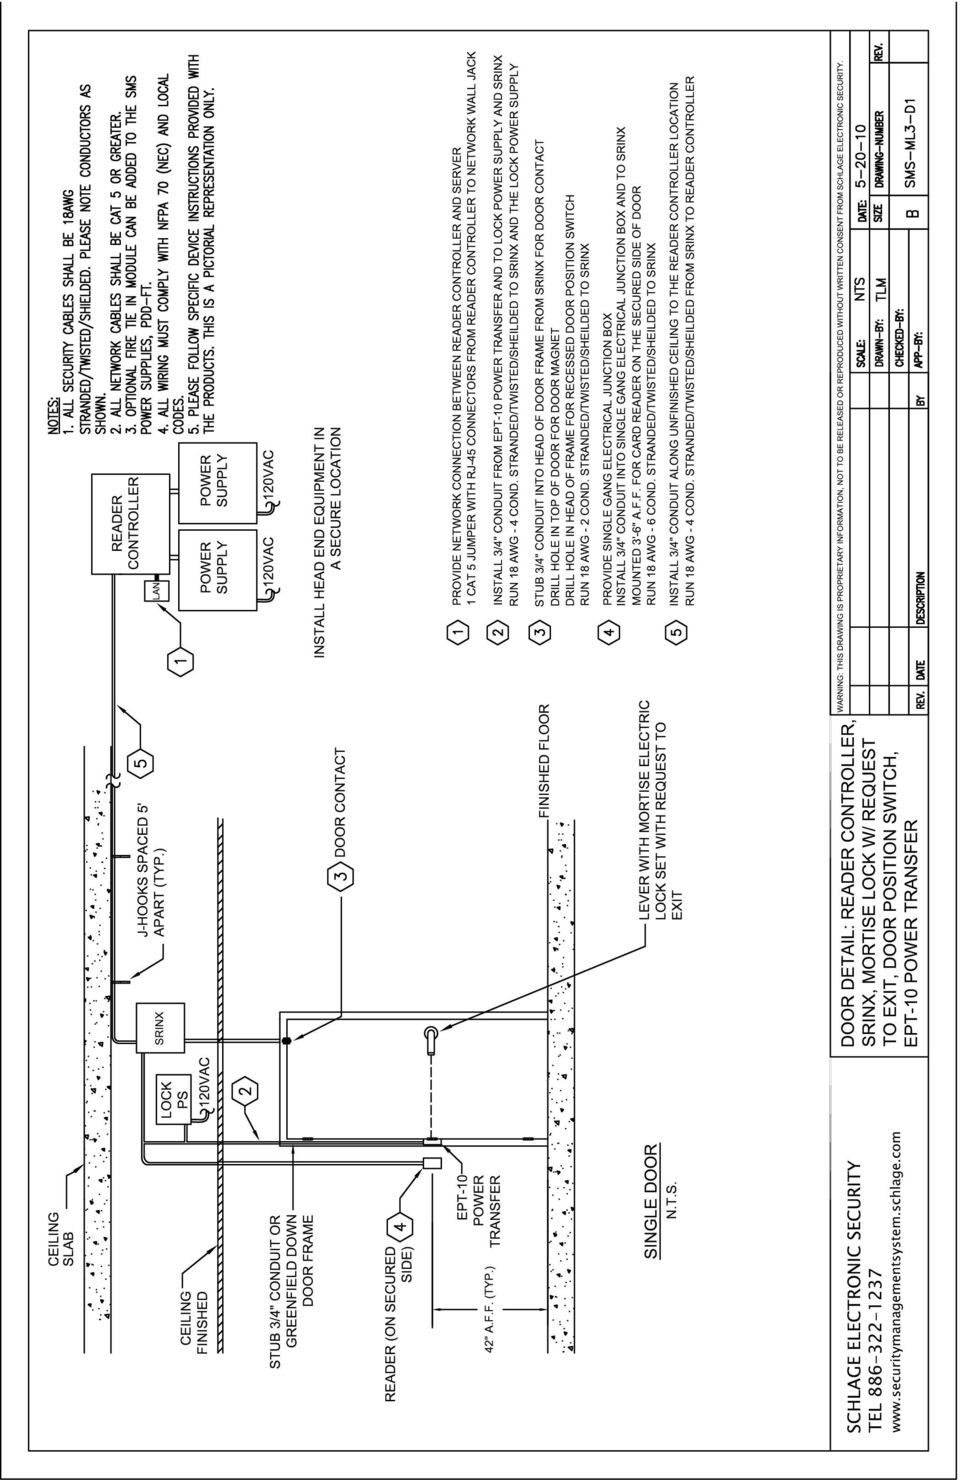 Schlage Wiring Diagrams Just Another Diagram Blog Ps902 Power Supply Security Management System Portfolio Pdf Rh Docplayer Net 672 Mt15